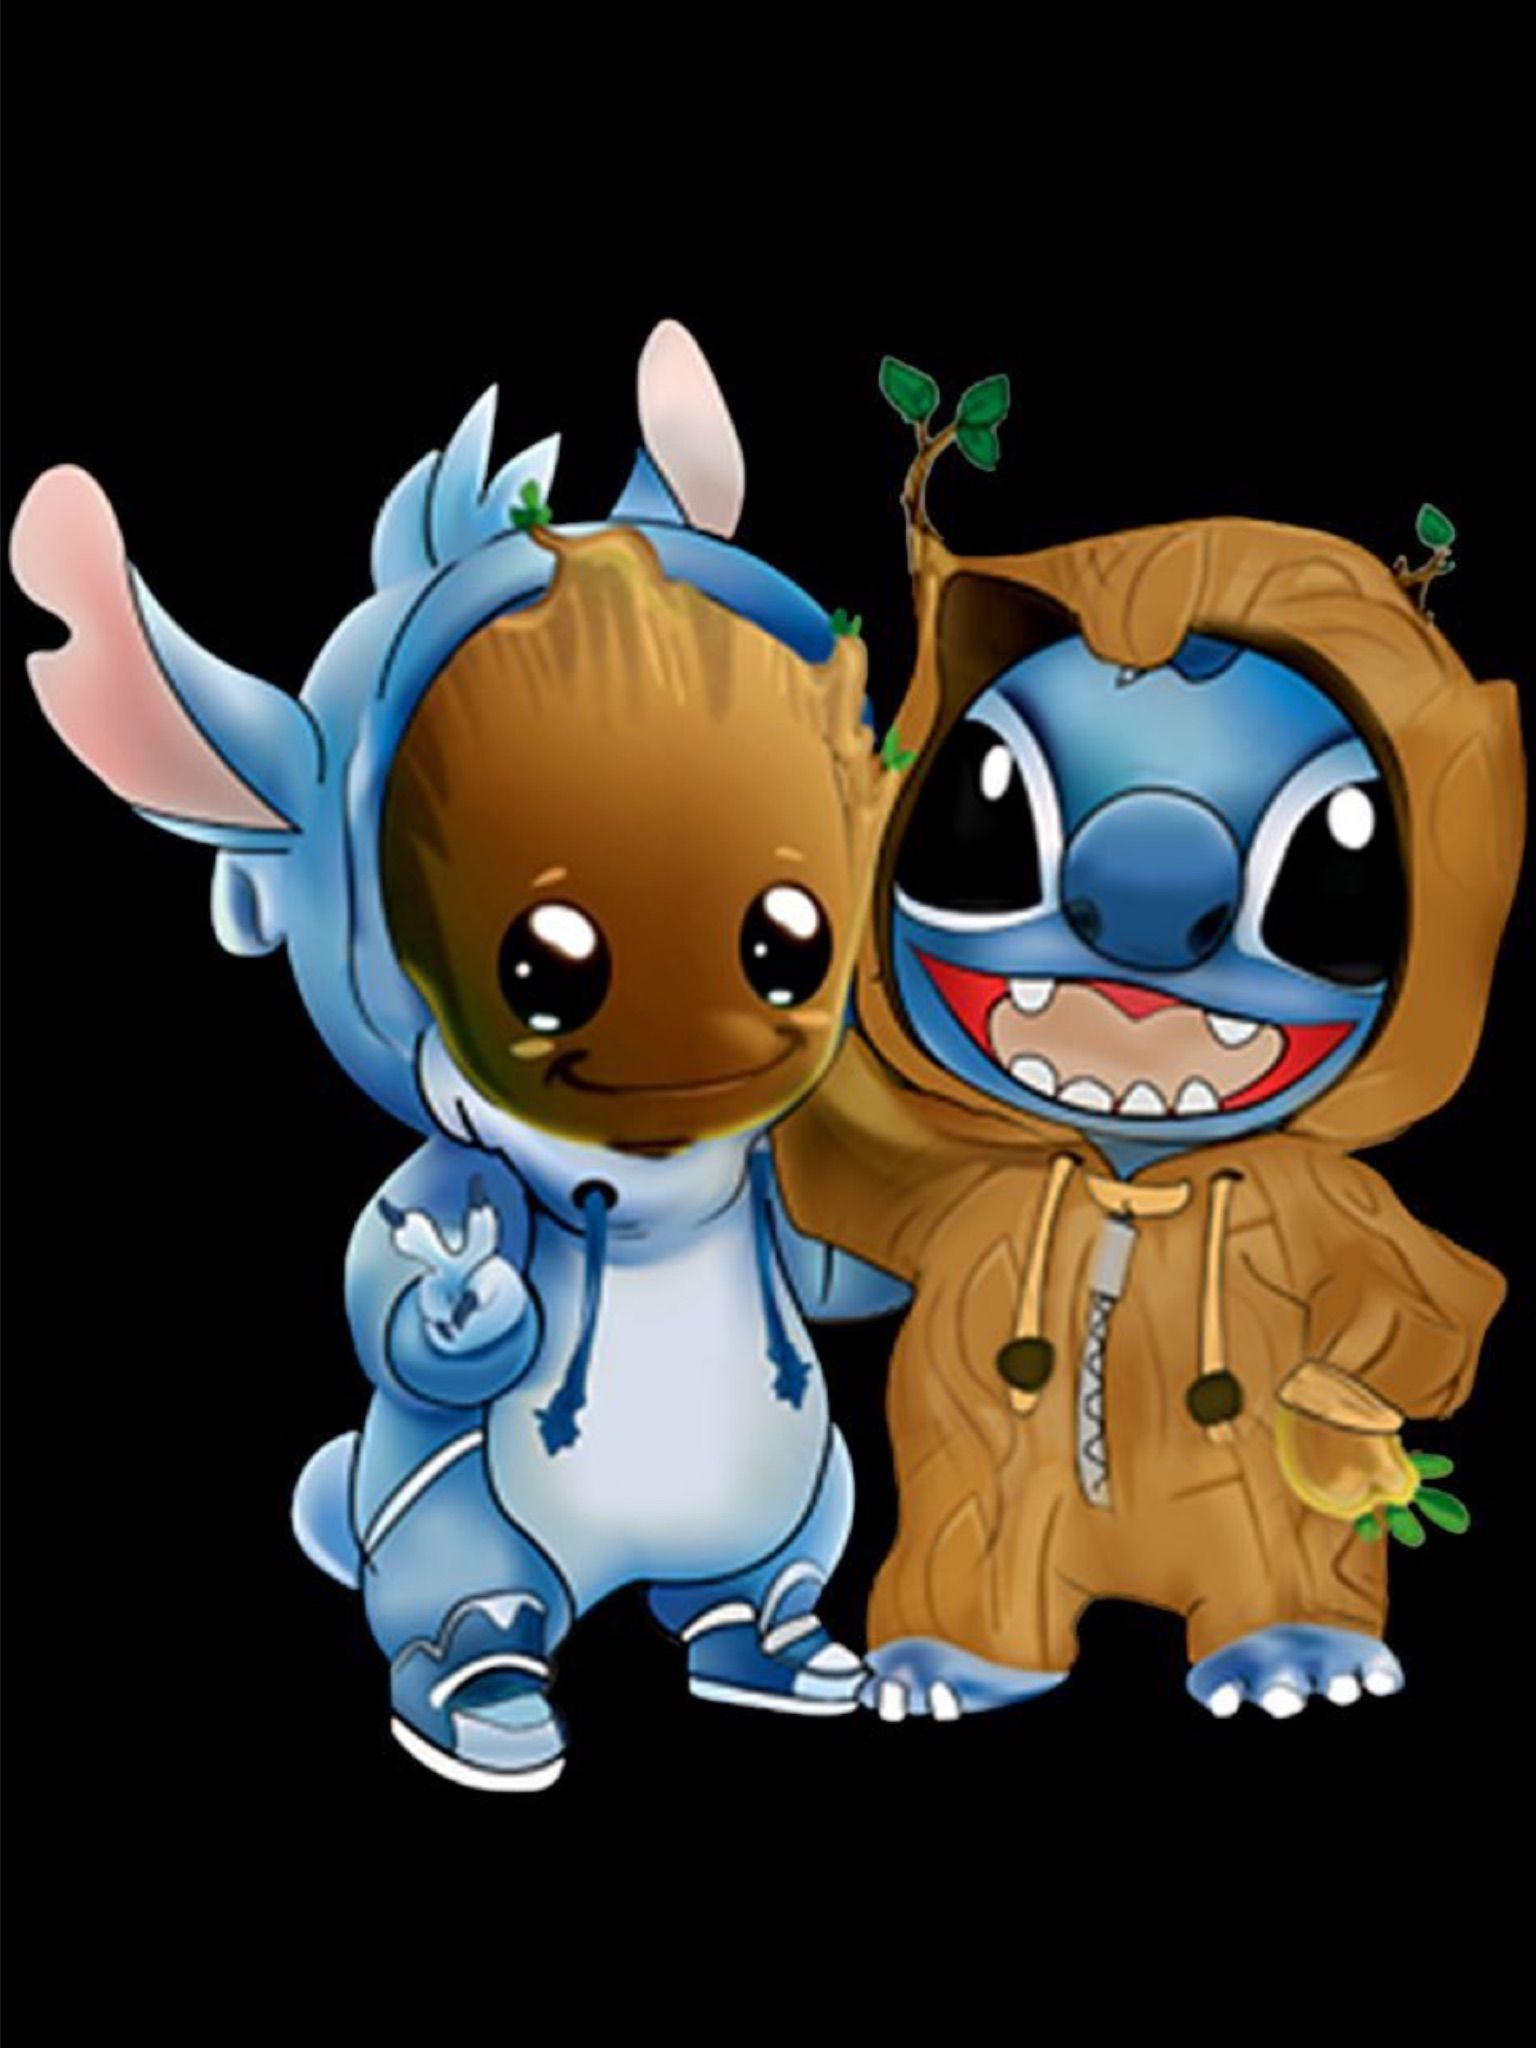 Baby Stitch Wallpapers Top Free Baby Stitch Backgrounds Wallpaperaccess